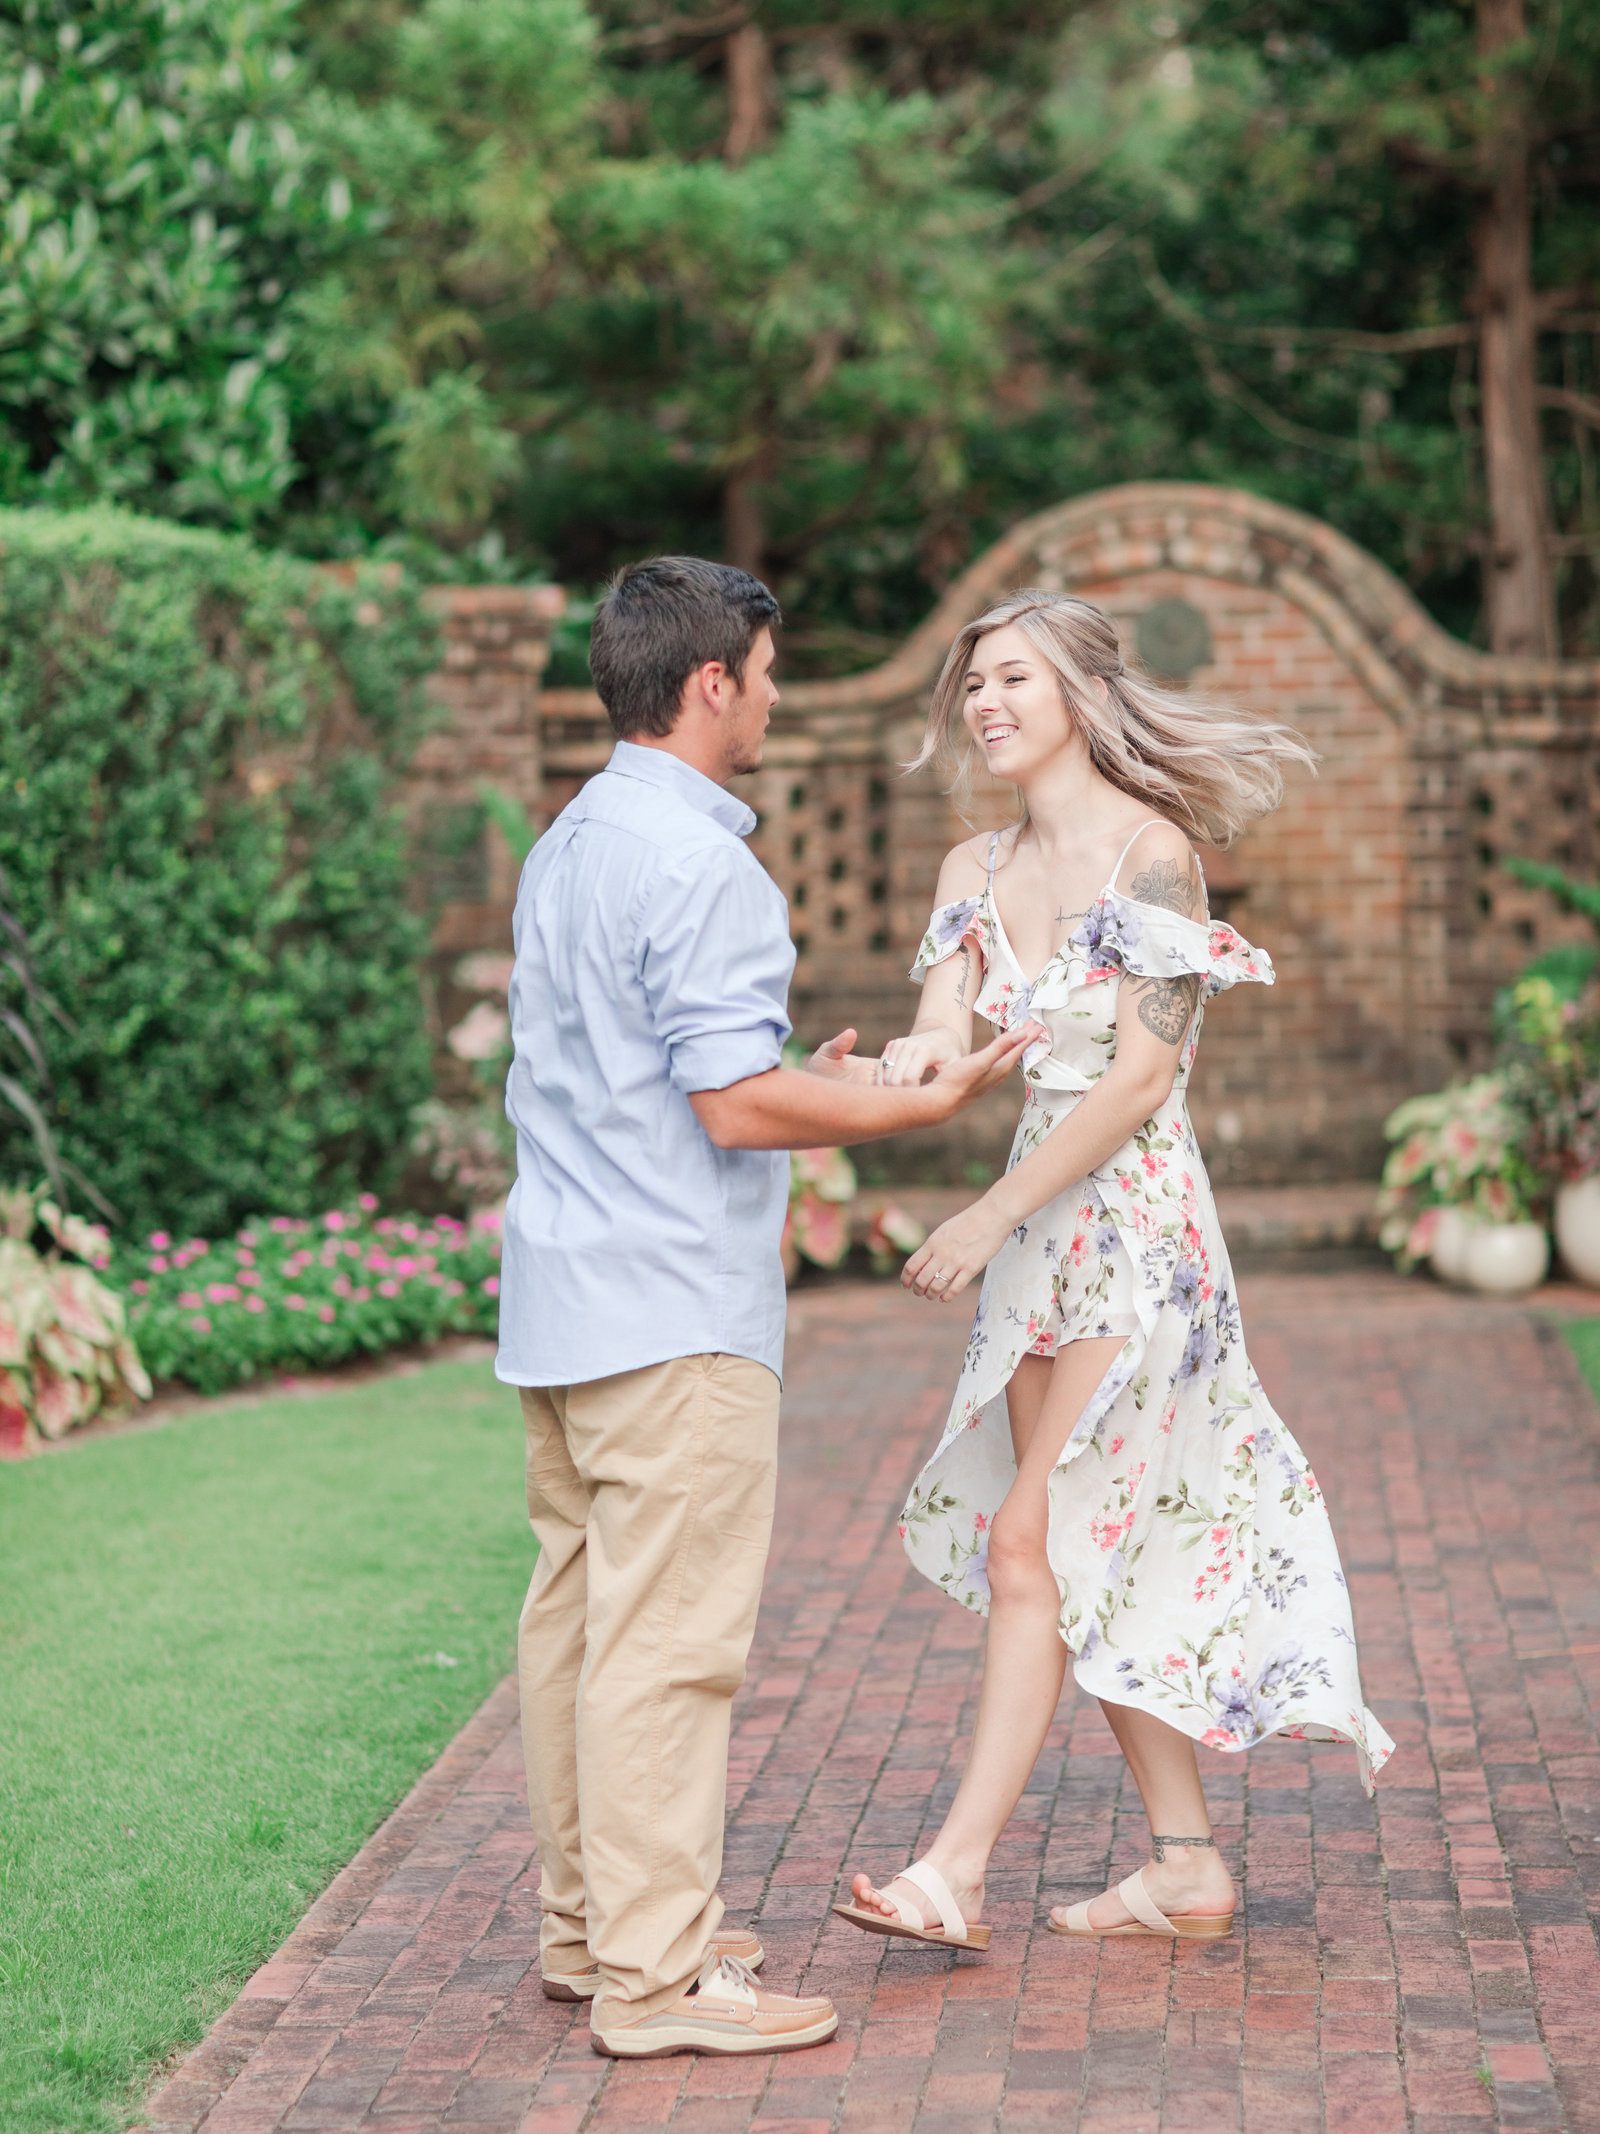 Jennifer B Photography-Sandhills Horticultural Gardens Engagement-Pinehurst NC-Cody and Kayla-2019-0184